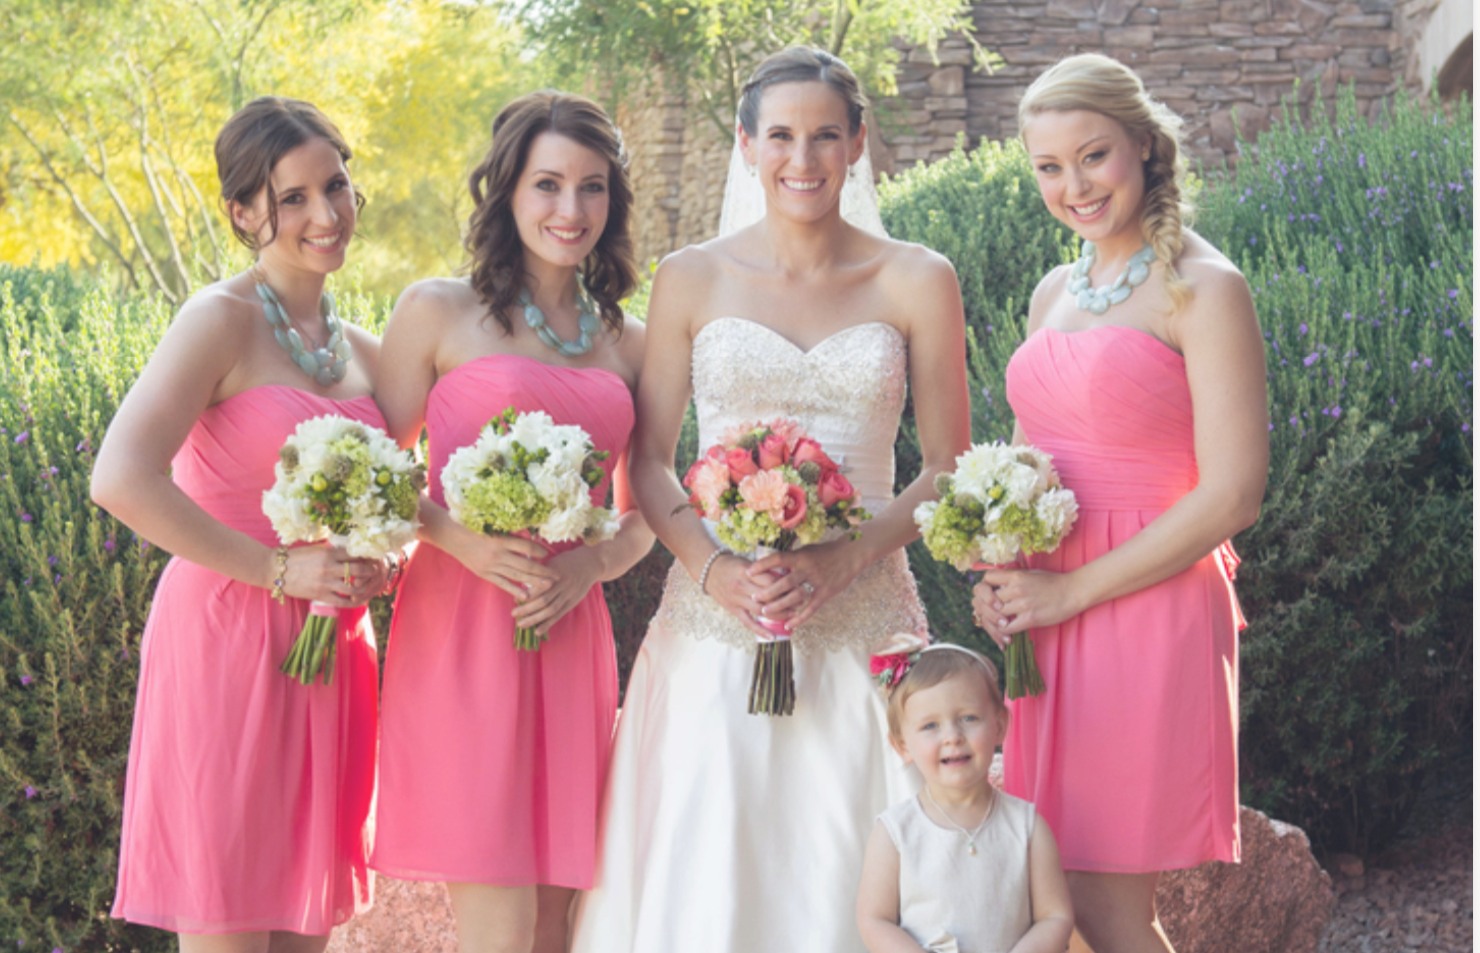 Coral and Sage Bridesmaids With Western Flower Girl - Anabelle ...